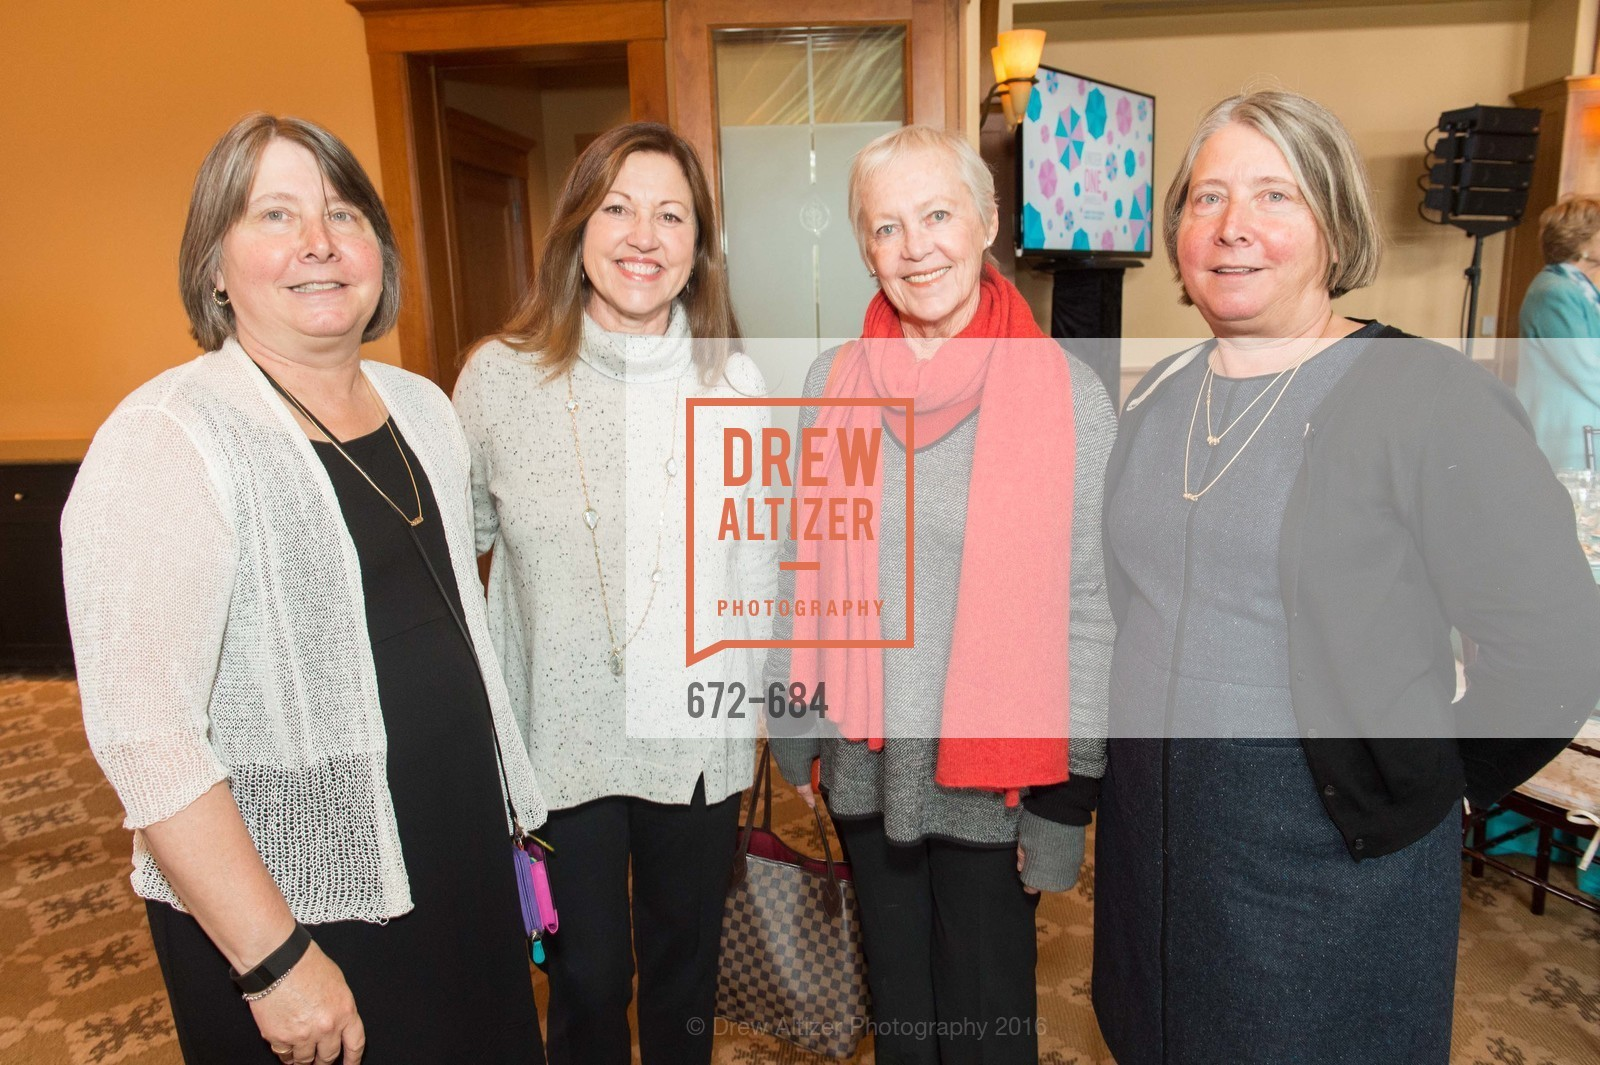 Kat Simmons, Kathleen McGinn, Marilyn Weinberg, Karen Wagner, Under One Umbrella, Sharon Heights Golf and Country Club, January 13th, 2016,Drew Altizer, Drew Altizer Photography, full-service agency, private events, San Francisco photographer, photographer california